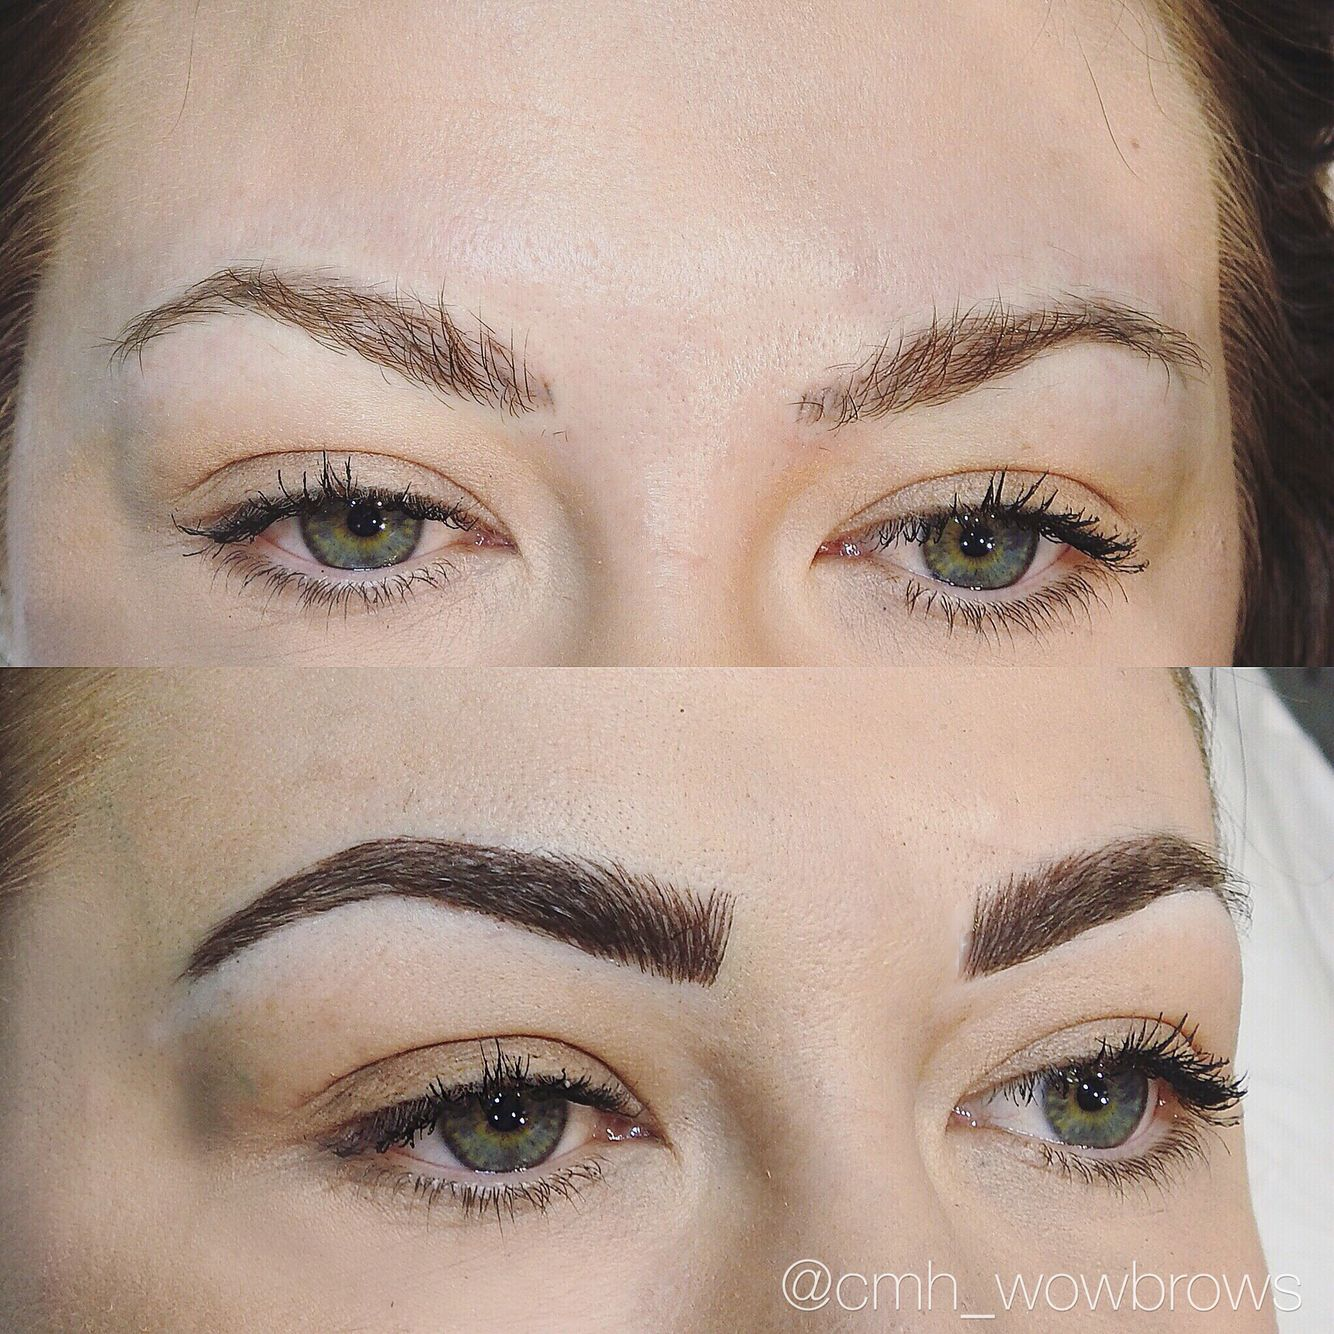 Hair stroke feather touch tattooed eyebrows cosmetic for Eyebrow tattoo images